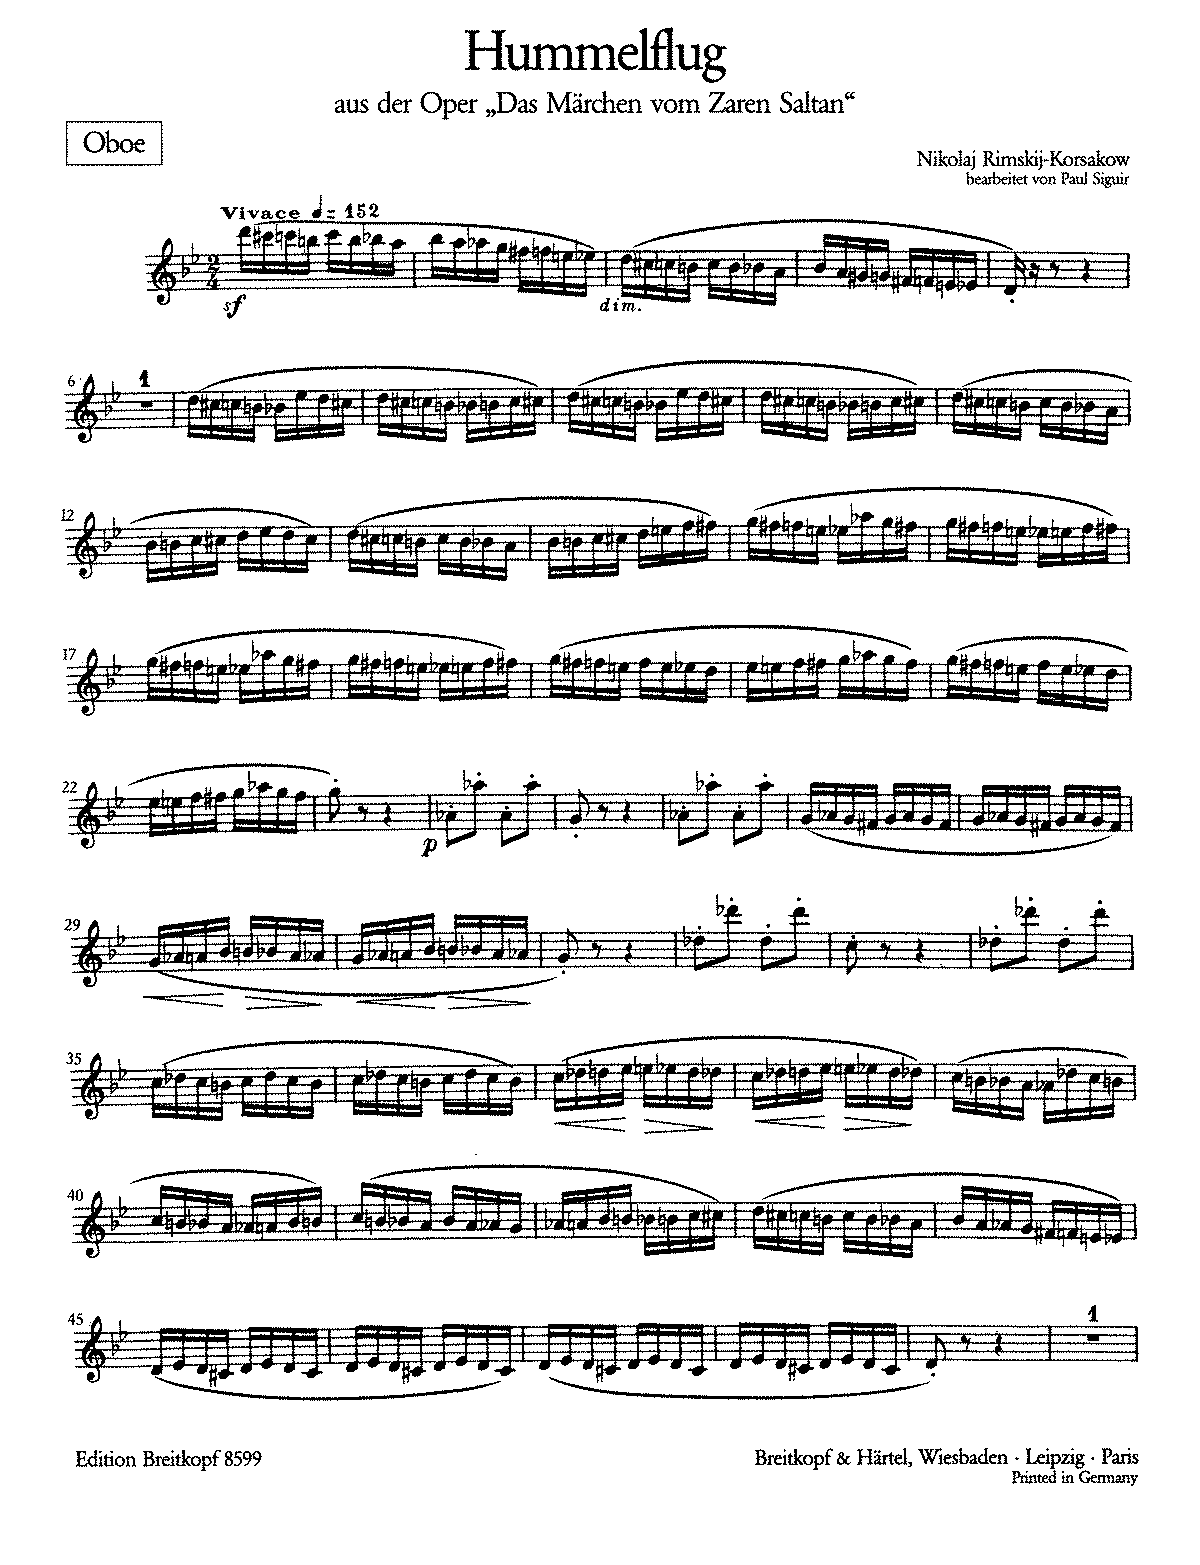 PMLP03170-Rimsky-Korsakov - Flight of the Bumblebee (trans. Siguir - oboe and piano).pdf